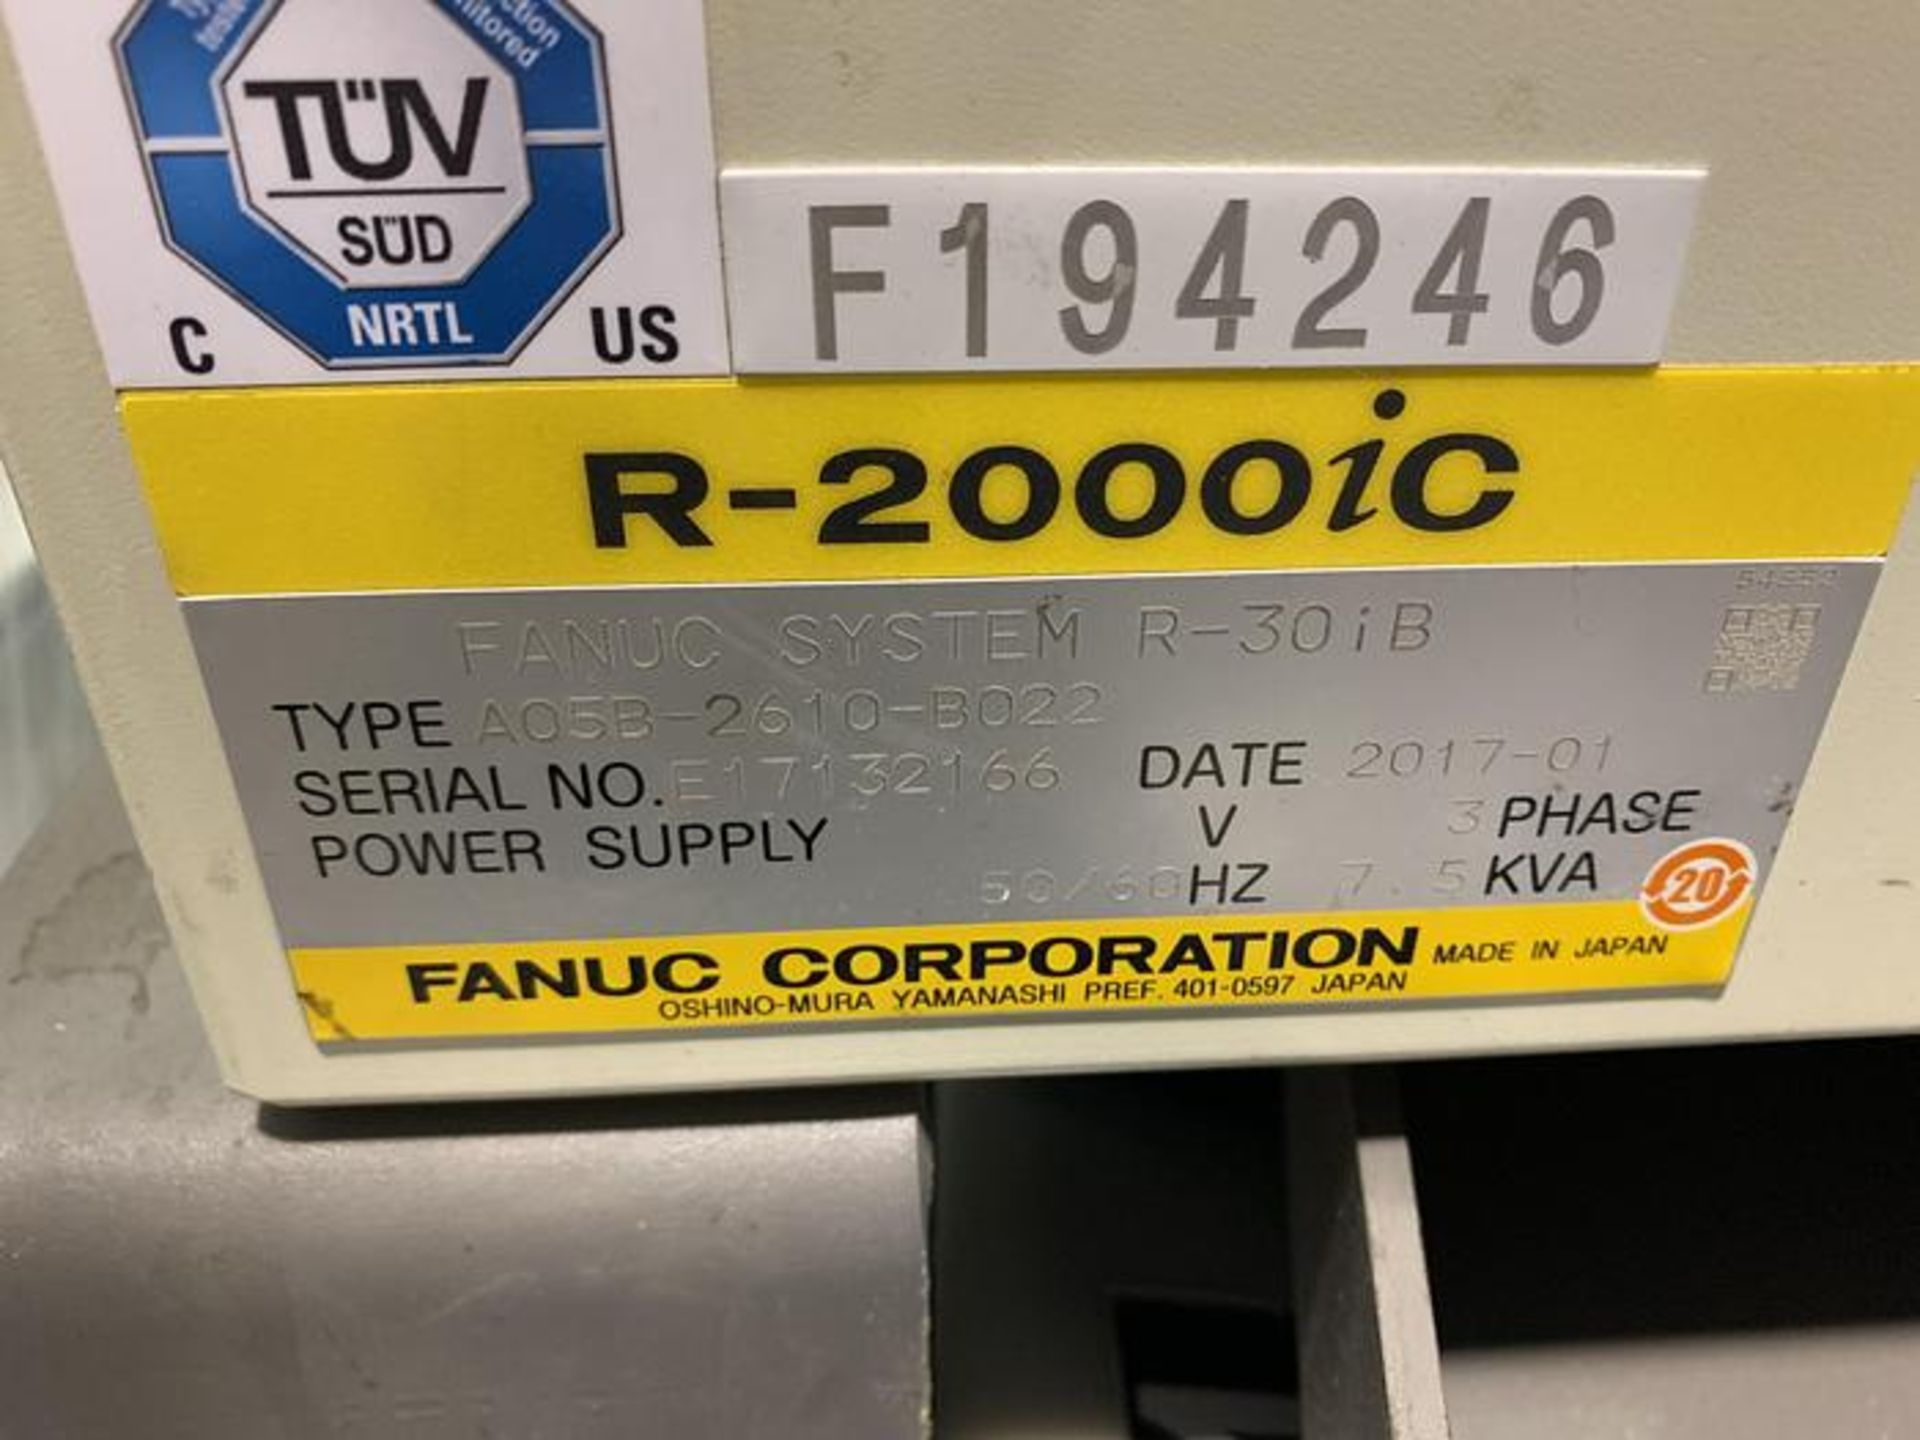 FANUC ROBOT R2000iC/125L 6 AXIS ROBOT WITH R30iB CONTROLLER, IR VISION, SN 194246, CABLES & TEACH - Image 17 of 19